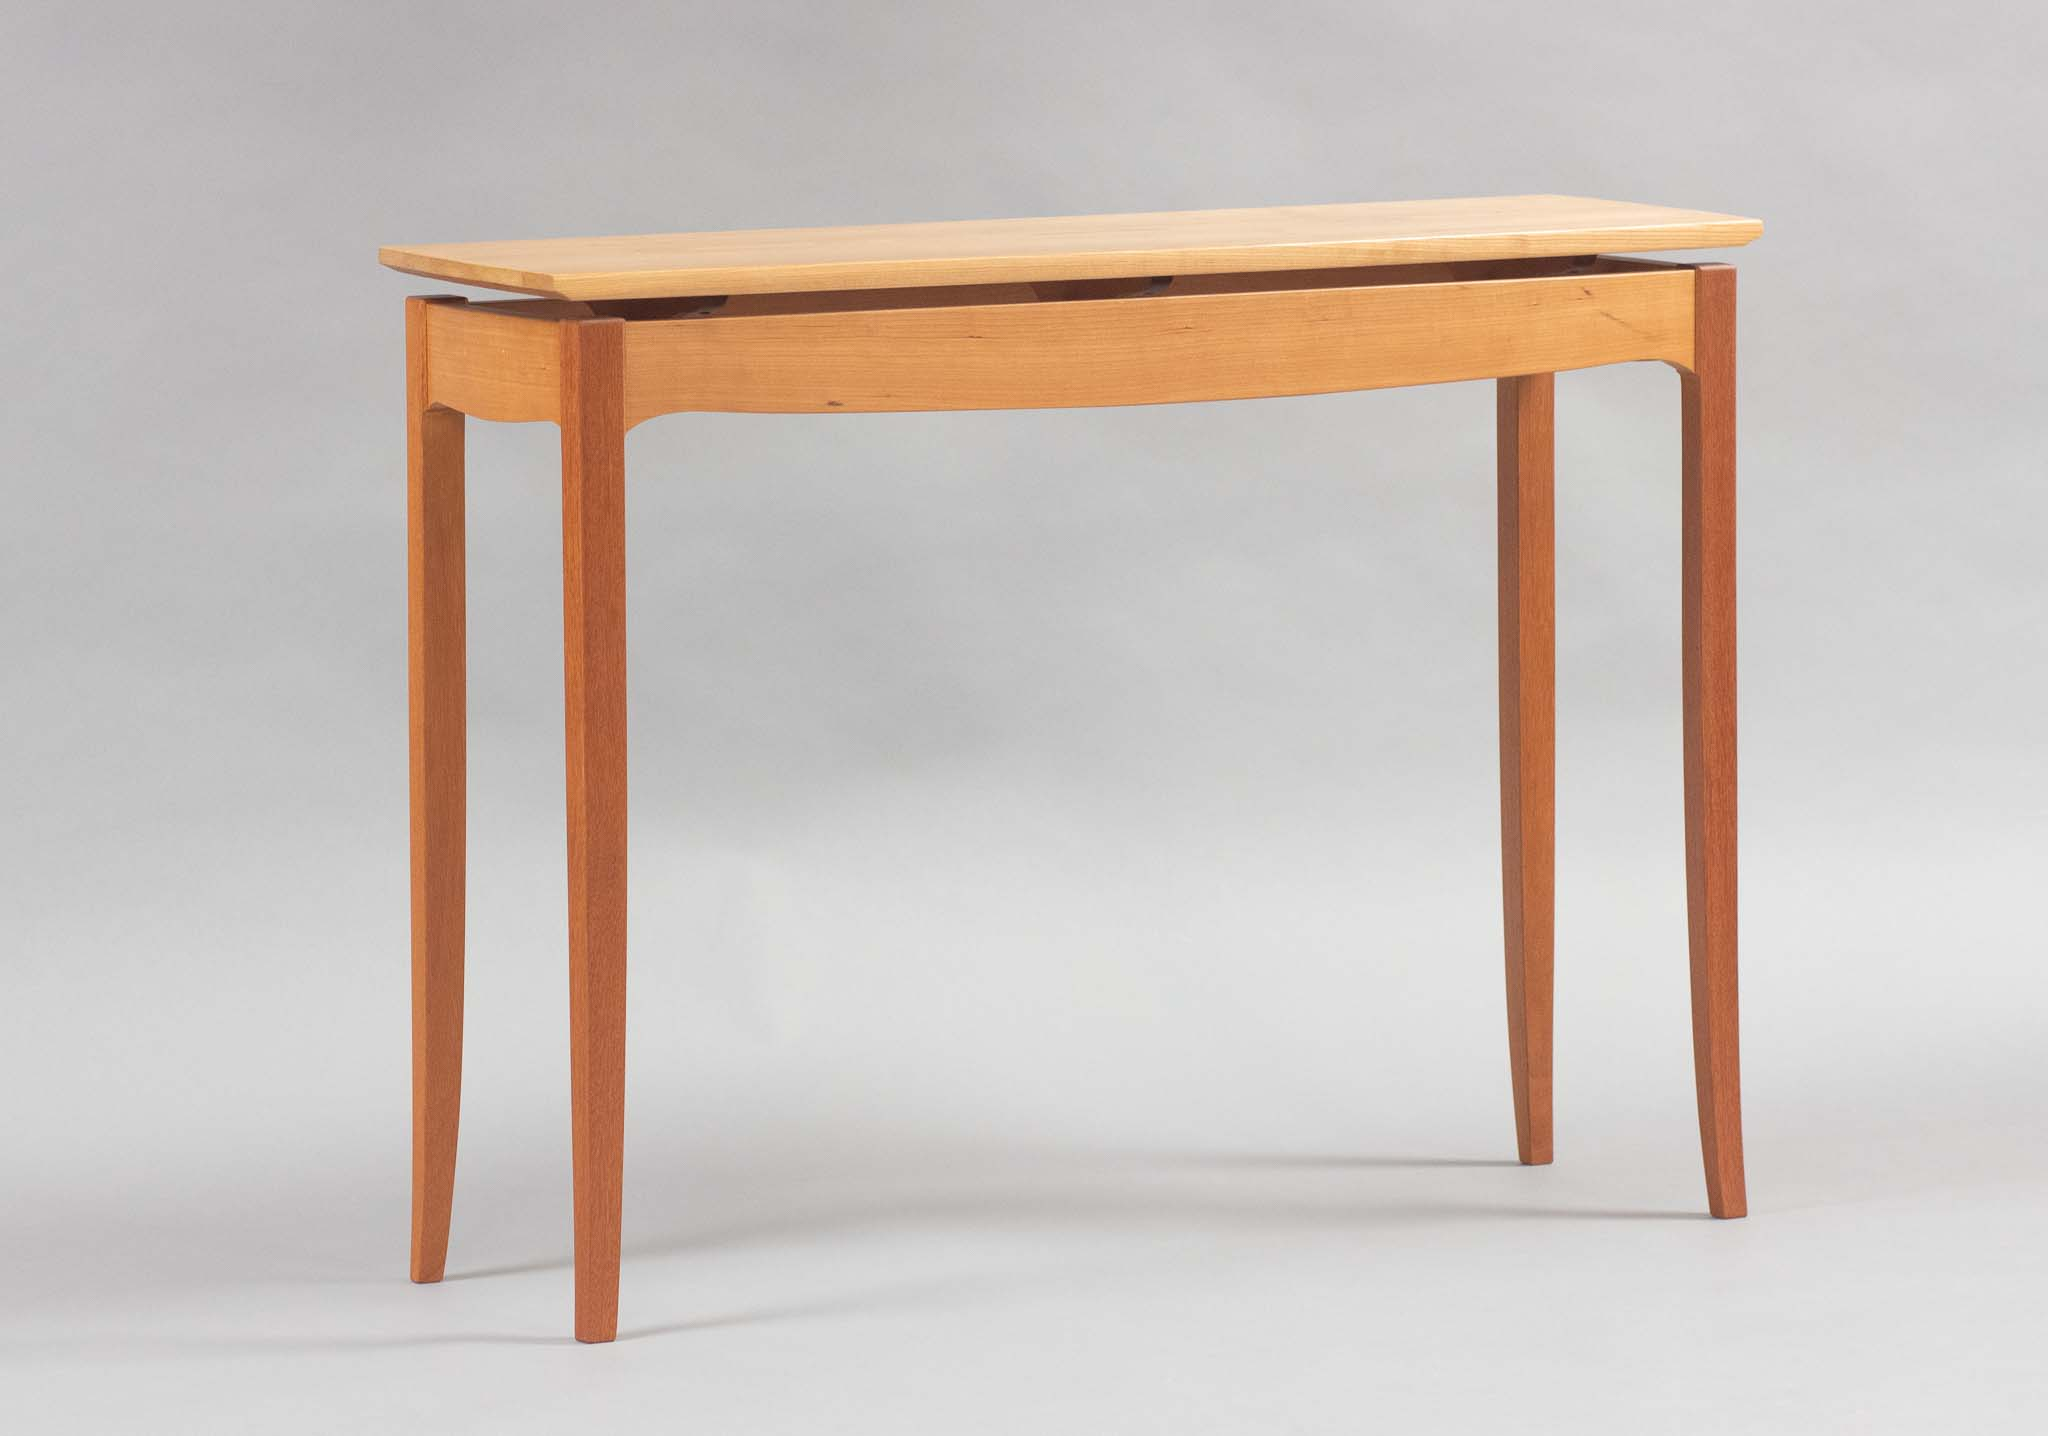 dw console table cherry doussie highlight gallery 1024x1024 2x